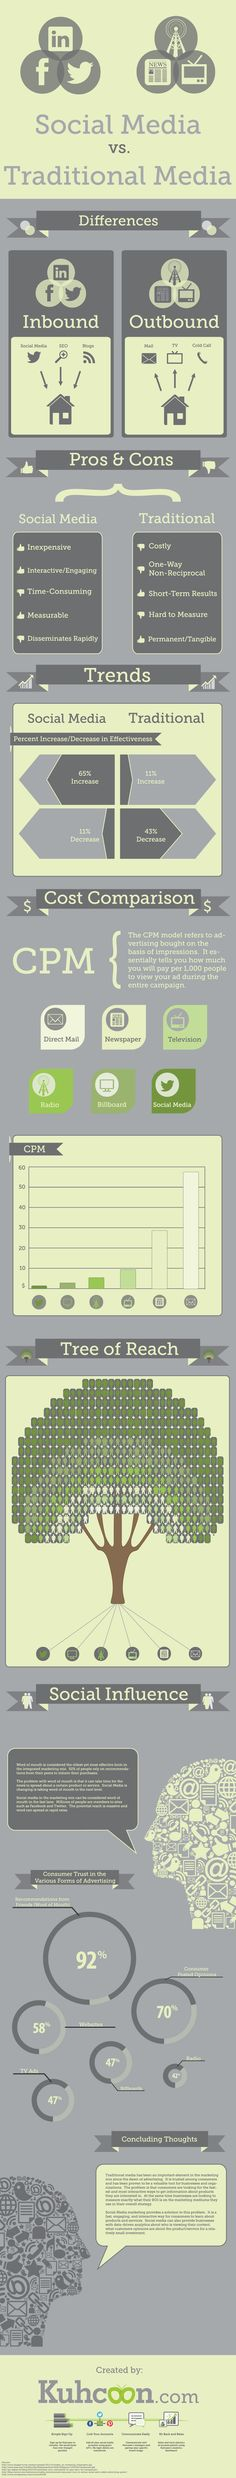 Marketing 101 - Social Media vs Traditional Media [INFOGRAPHIC] Social media has rapidly integrated itself into our everyday lives, both personal and professional, and it's perhaps had no greater impact than on the world of marketing, with consumers and brands seeing enormous benefits and changes.    But how does social media compare to traditional marketing? What are the pros and cons of each?